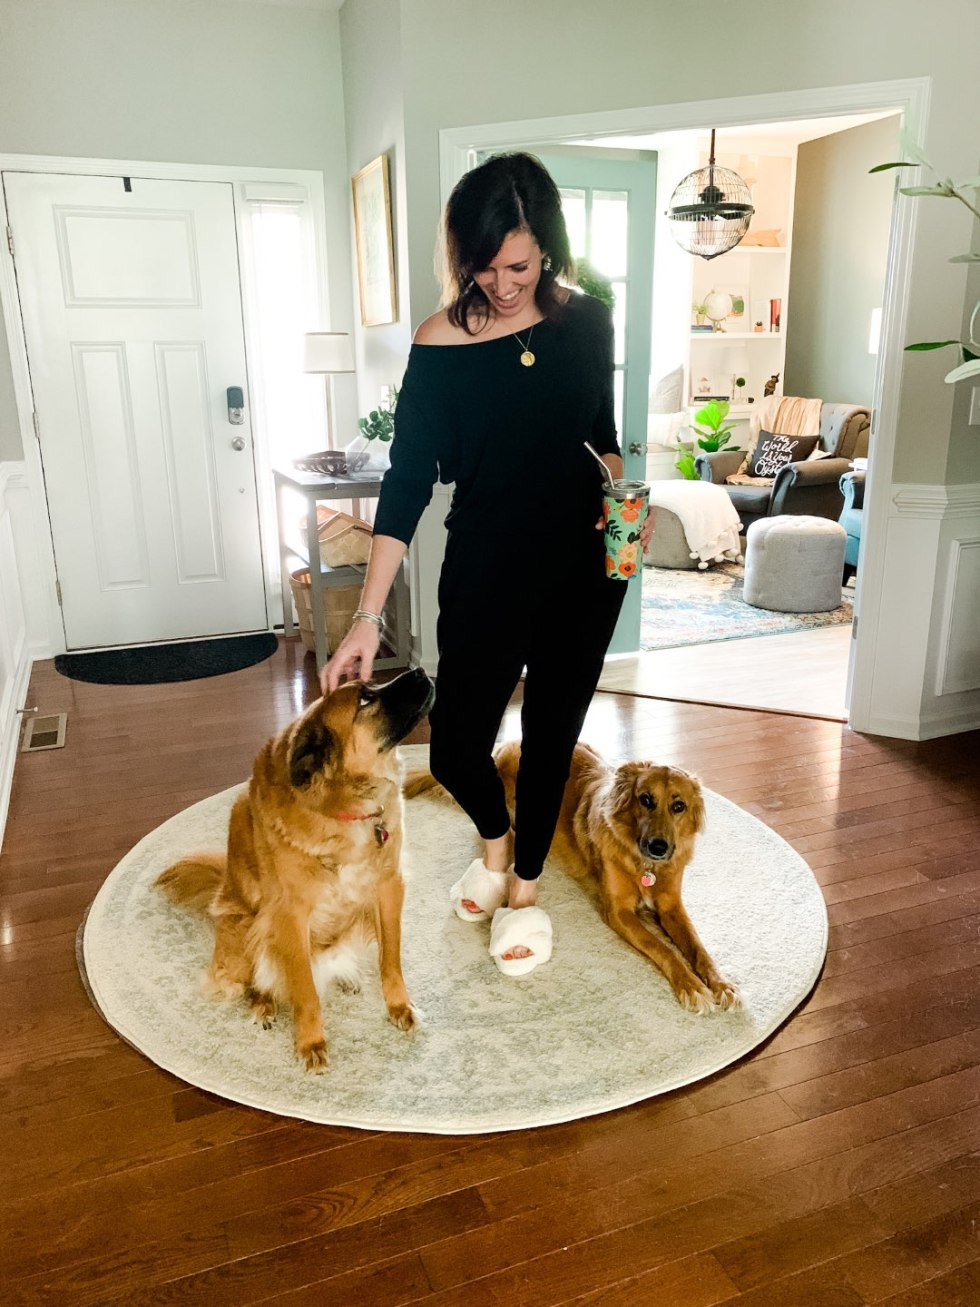 5 Stylish Teleworking Outfits for Women - I'm Fixin' To - @mbg0112 | Teleworking Outfits for Women by popular North Carolina fashion blog, I'm Fixin' To: image of a woman standing next to her dogs and wearing a black Michael Stars jumpsuit.